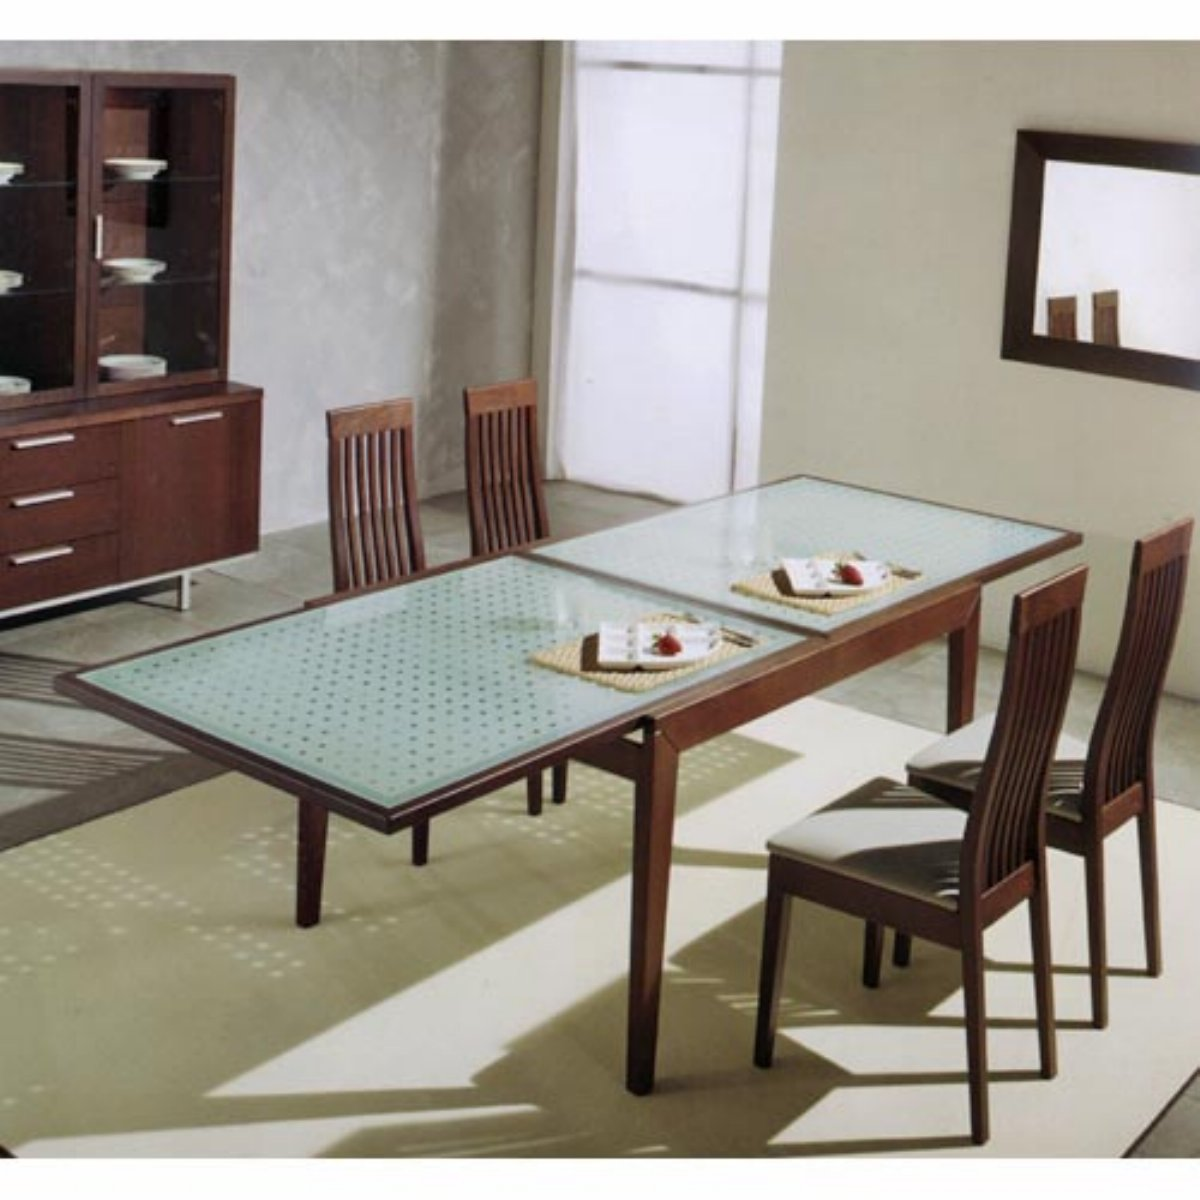 expandable dining table set with glass table and wooden chair on wheat  carpet for inspiring dining. Dining Room  Inspiring Expandable Dining Table Set For Modern